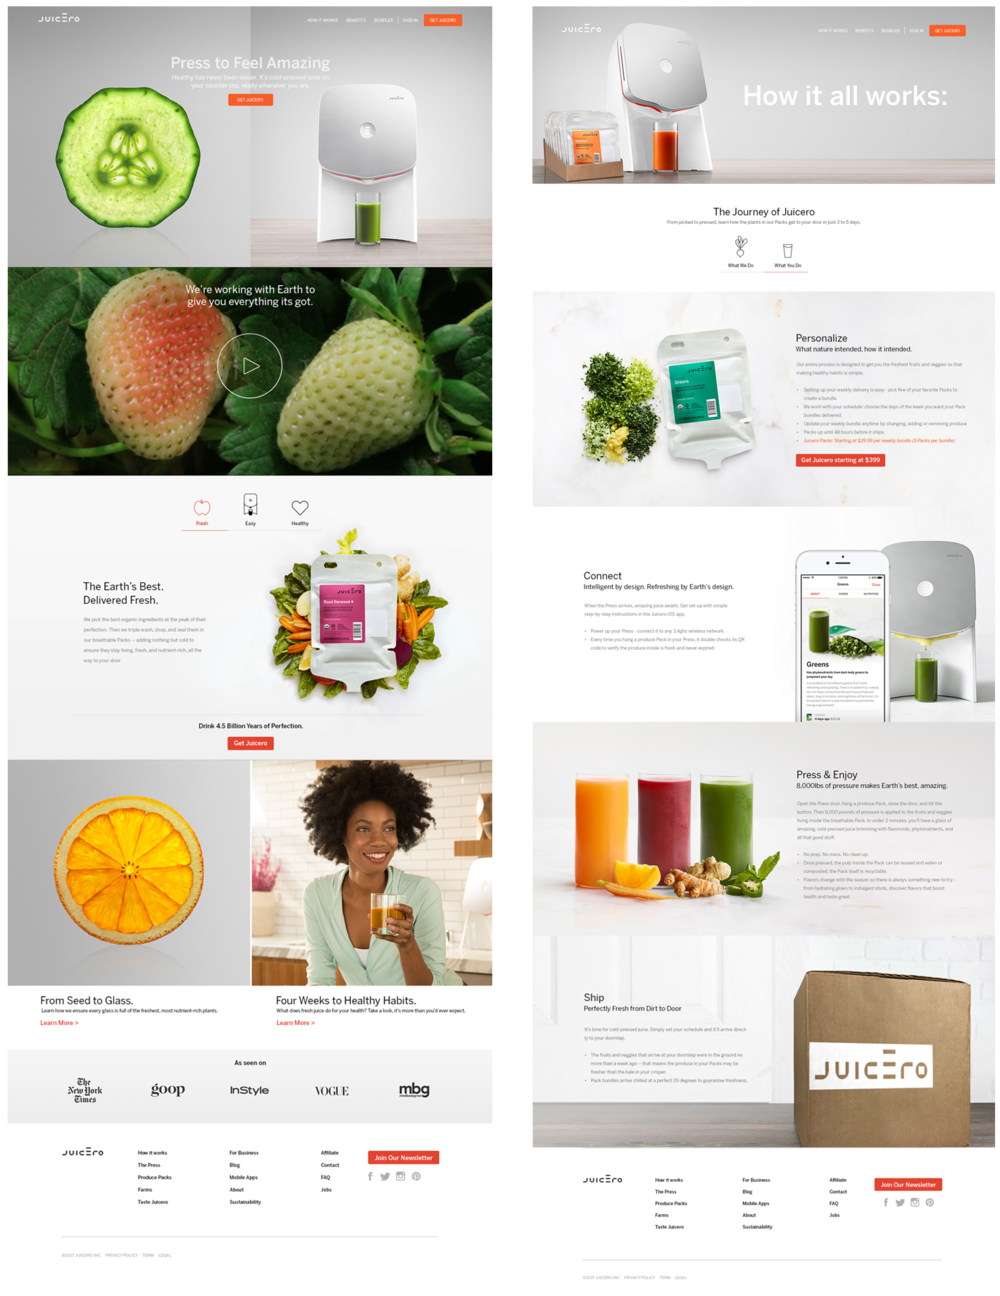 juicero_studio_lo_website.png